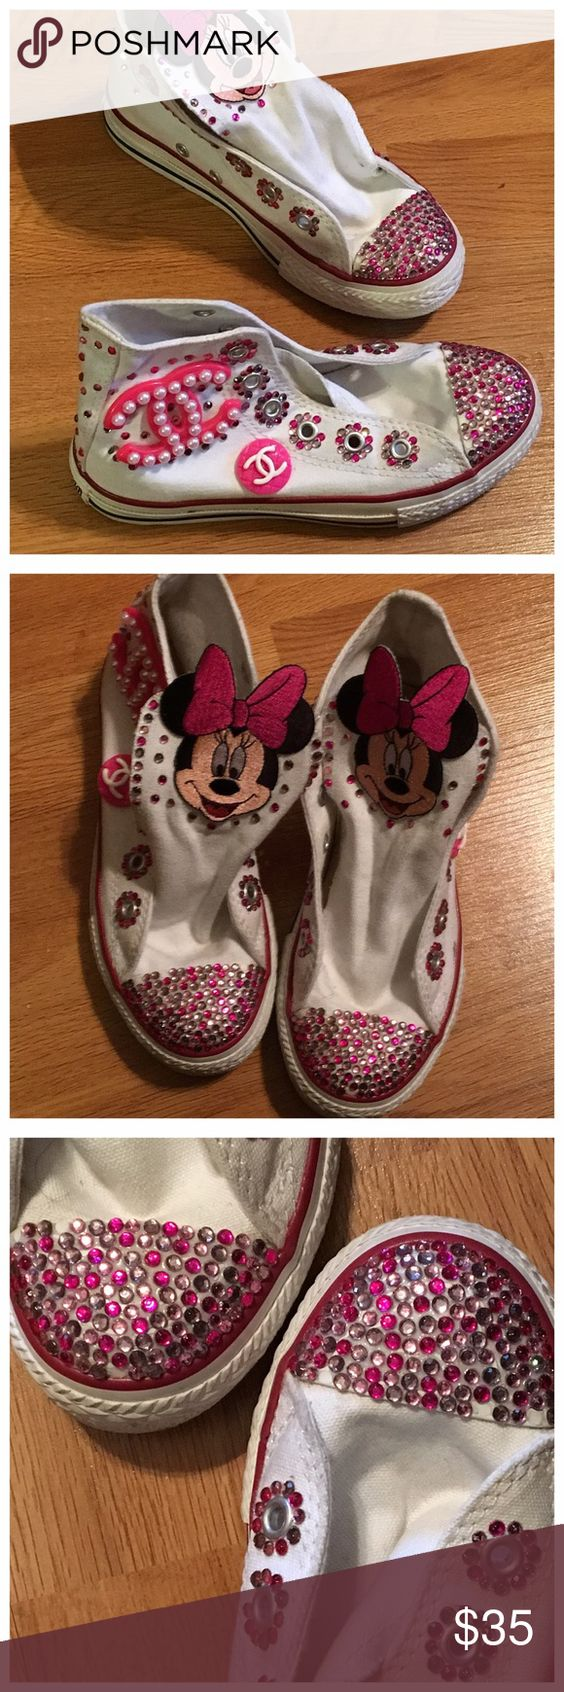 Mouse Theme Converse High Top Sneakers Bling white converse high top. Minnie patch on the tongue of the tennis shoes. Very cute and fun. Only worn once maybe for a couple of hours. No shoestring. Size 13 girl. Missing a few stones as shown in the picture. Converse Shoes Sneakers